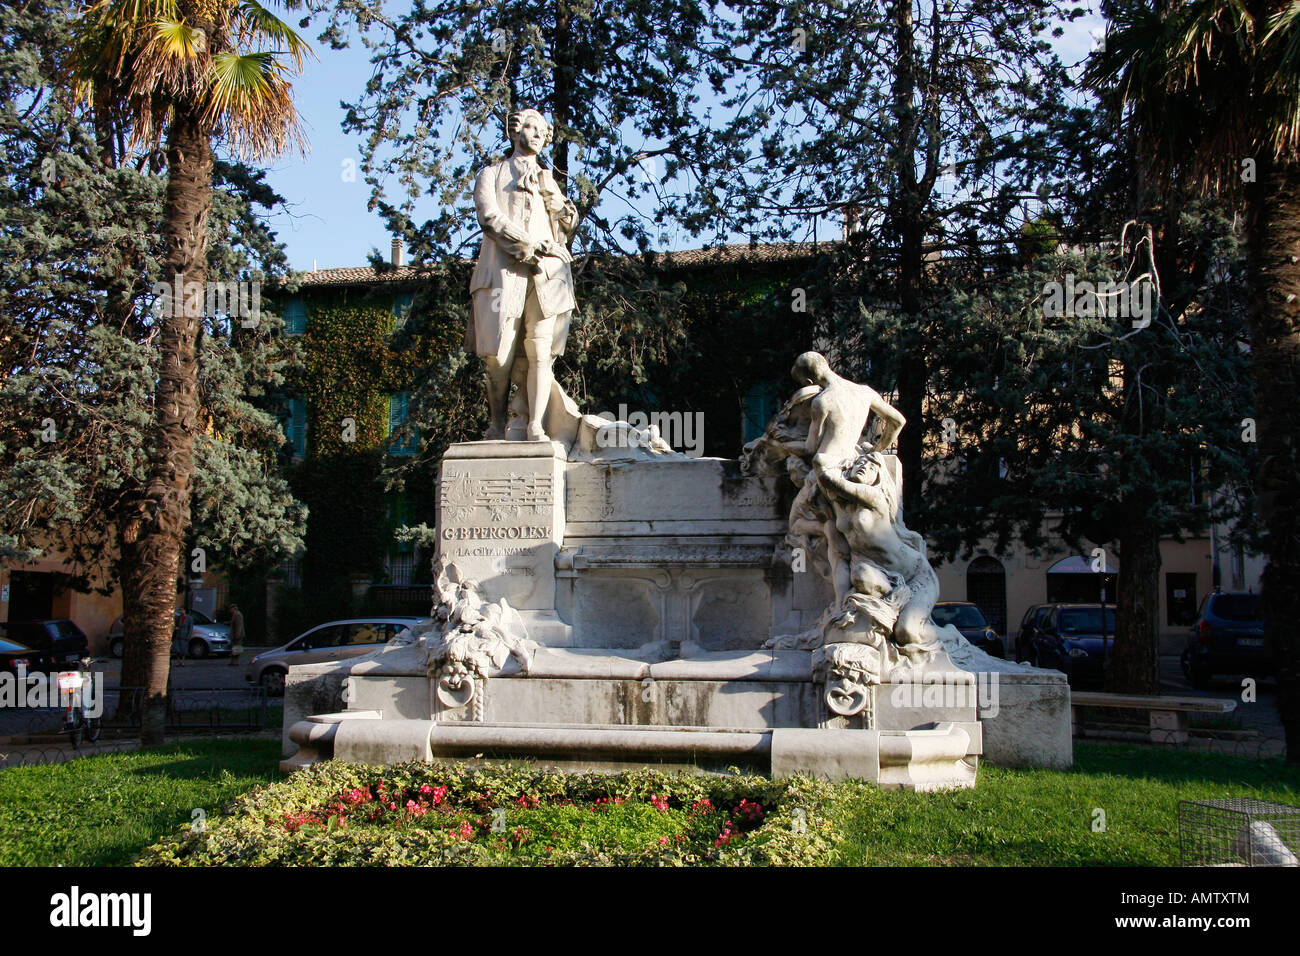 Monument  to G.B. Pergolesi which is situated in a small garden style square. - Stock Image